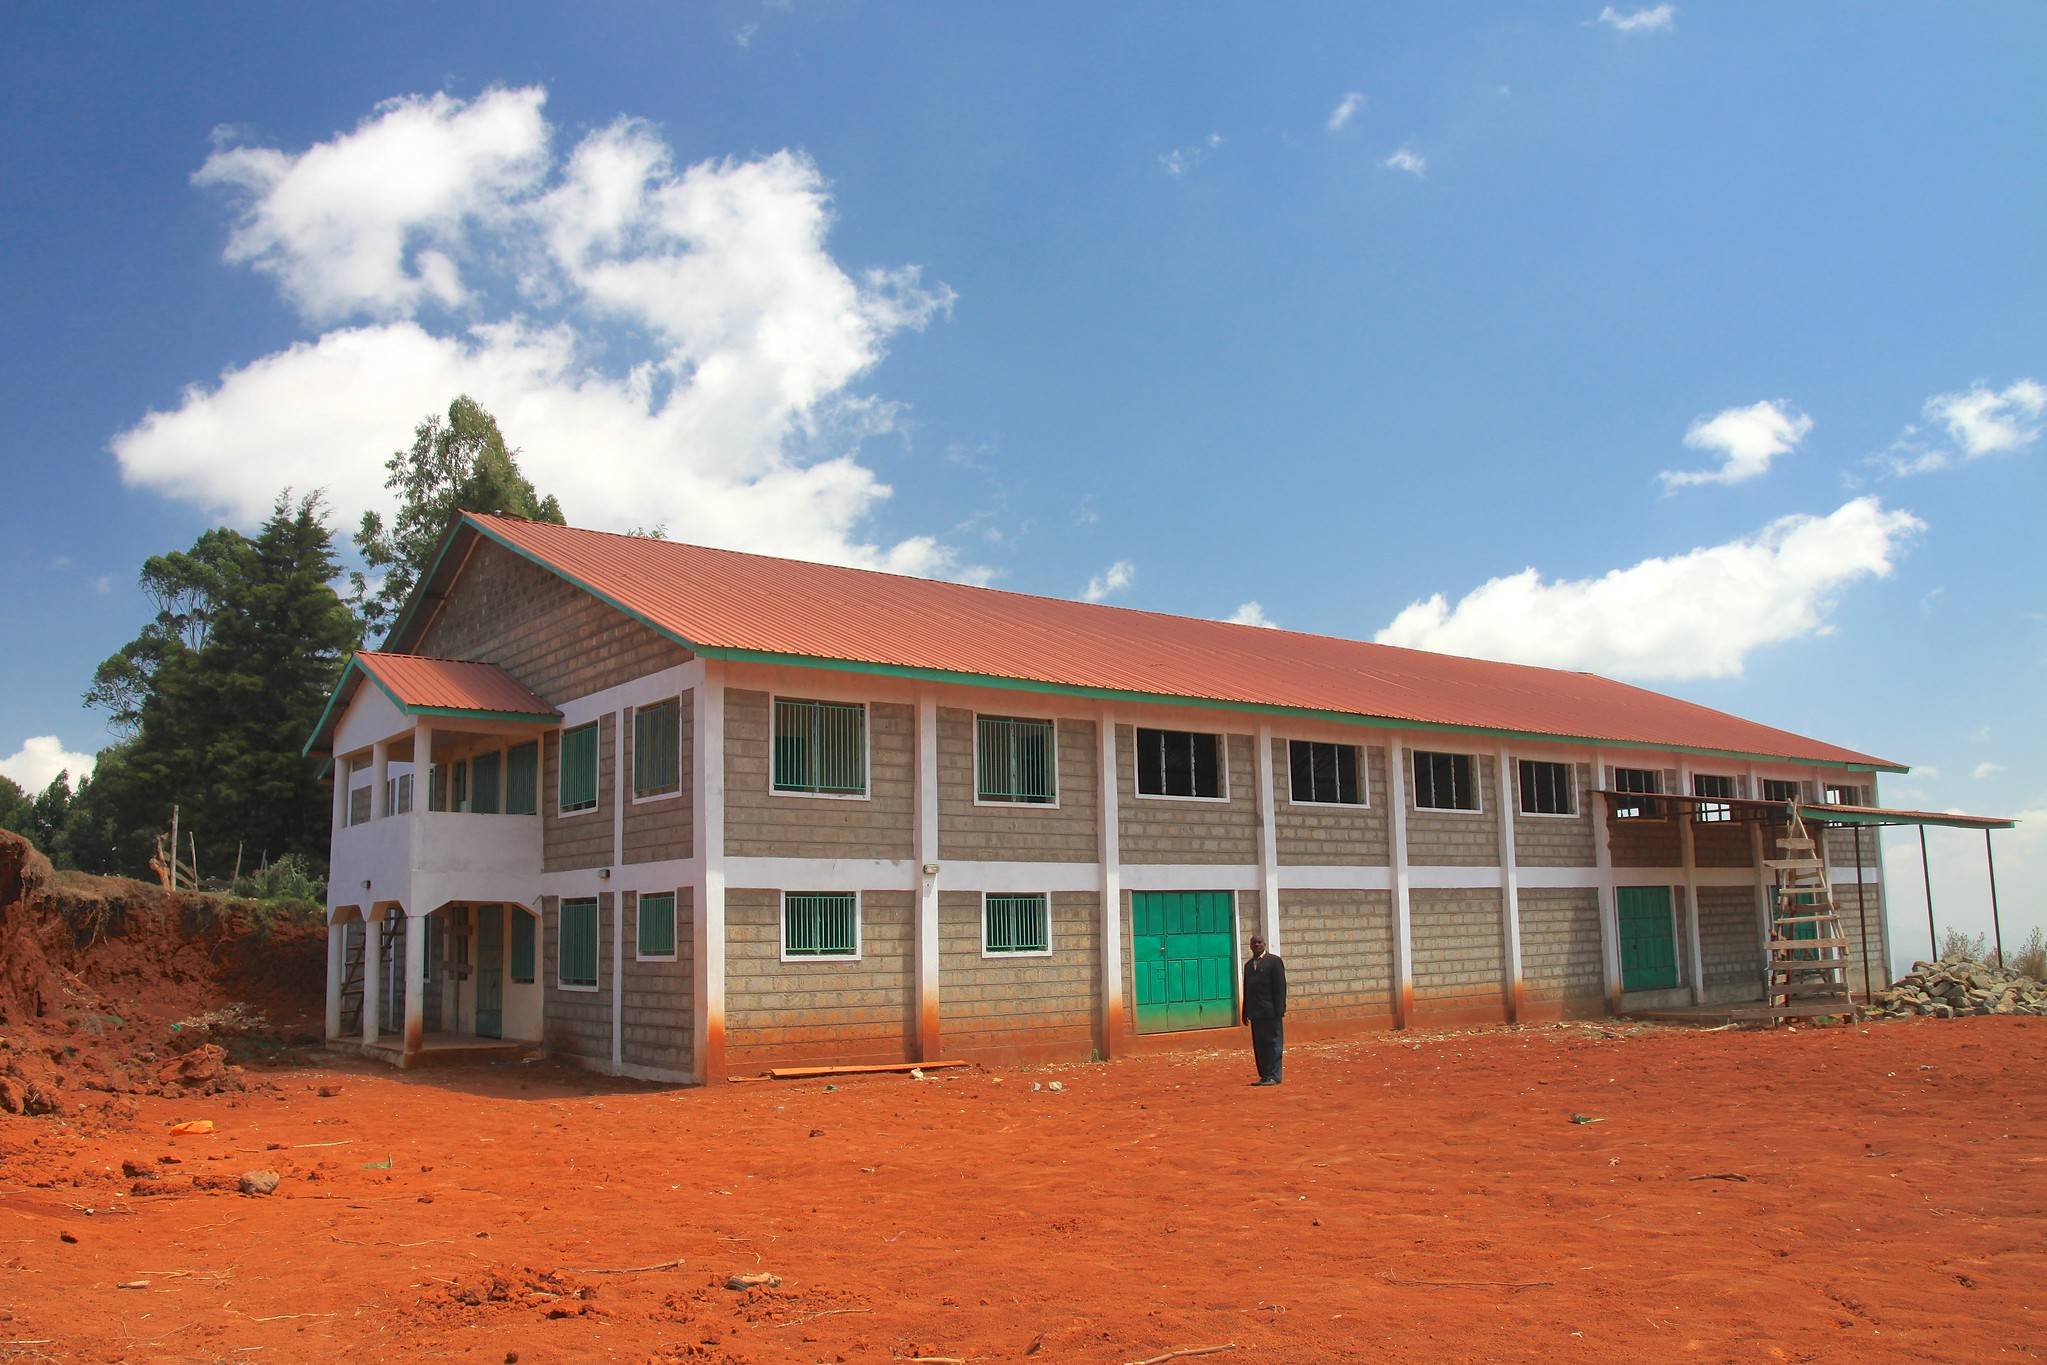 New Dry Mill in Embu build by the Murue Society. Expected to open next year.